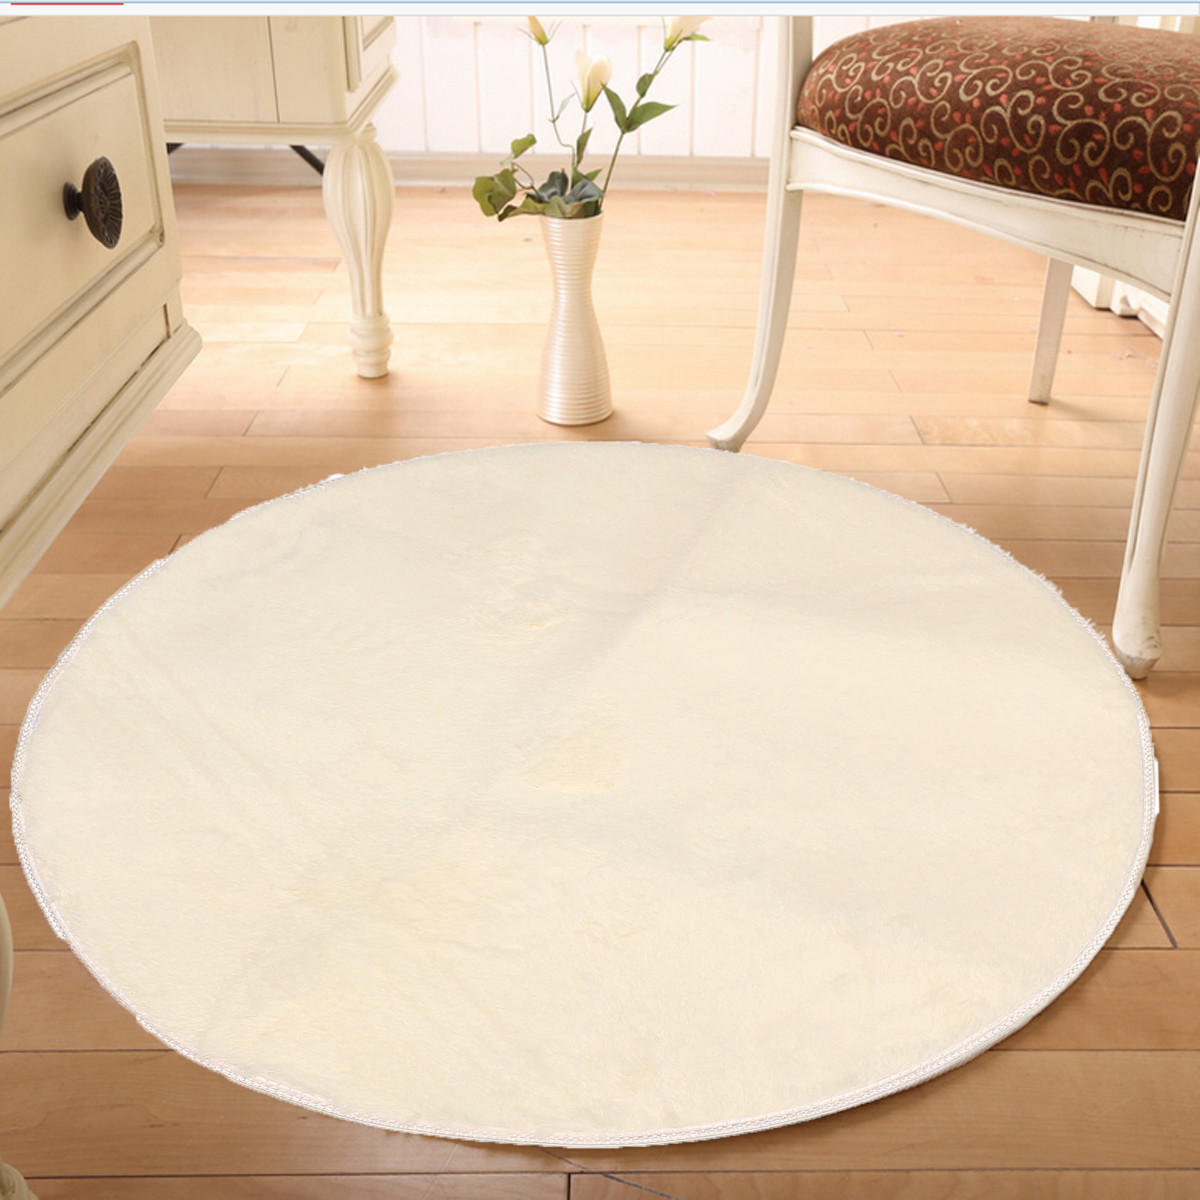 100x100 Pure Colour Soft Round Shaggy Mat Door Sill Floor Plush Carpet Anti Slip Bath Rug